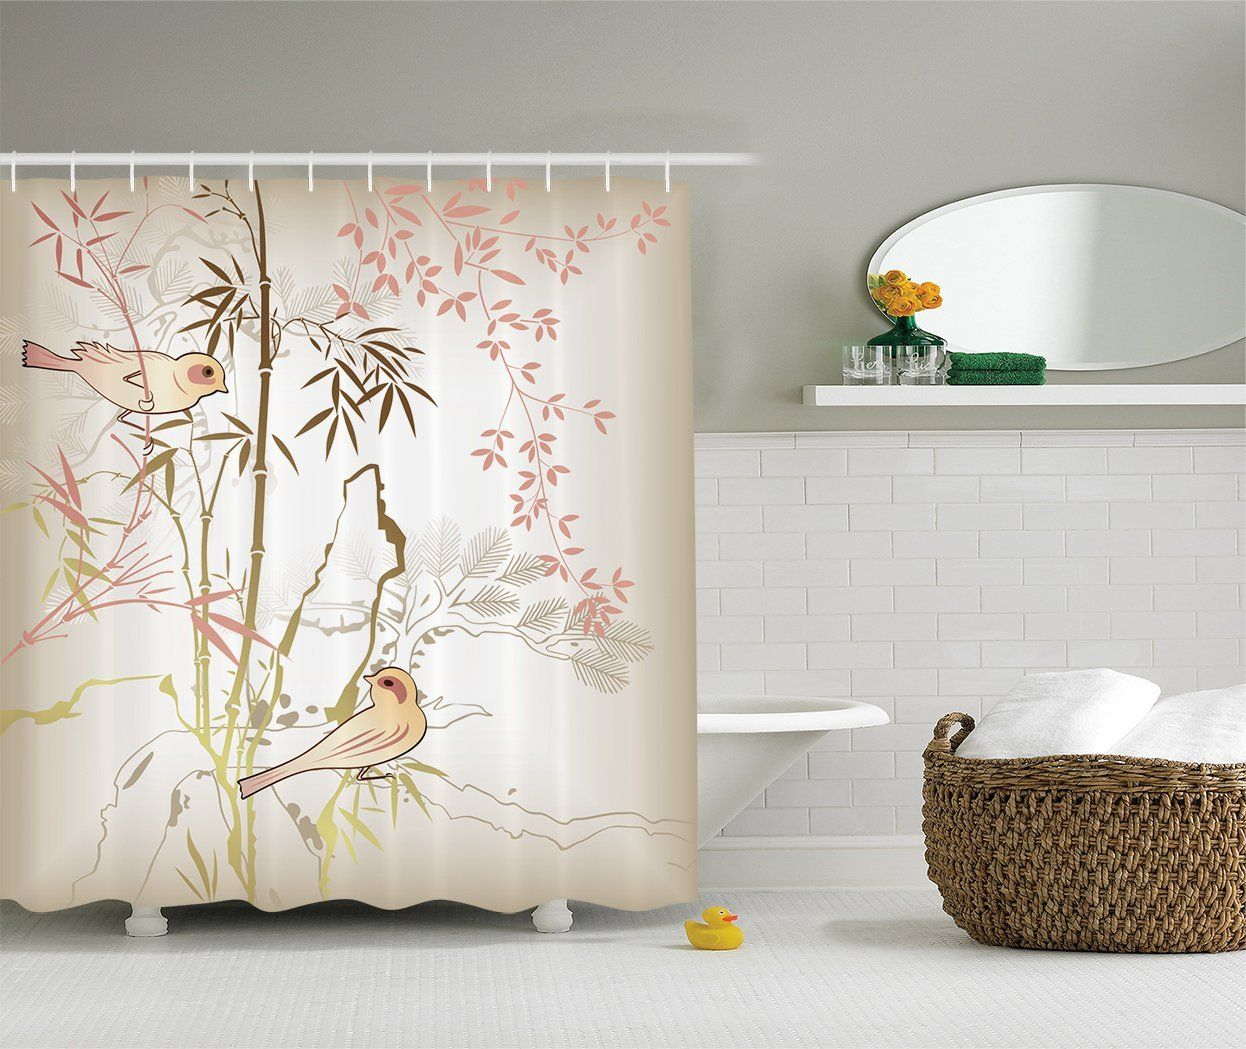 Ambesonne Vintage Bamboo Decor Collection Nature Leaf And Bird Design Illustration Floral Animal Print Polyester Fabric Bathroom Shower Curtain Set